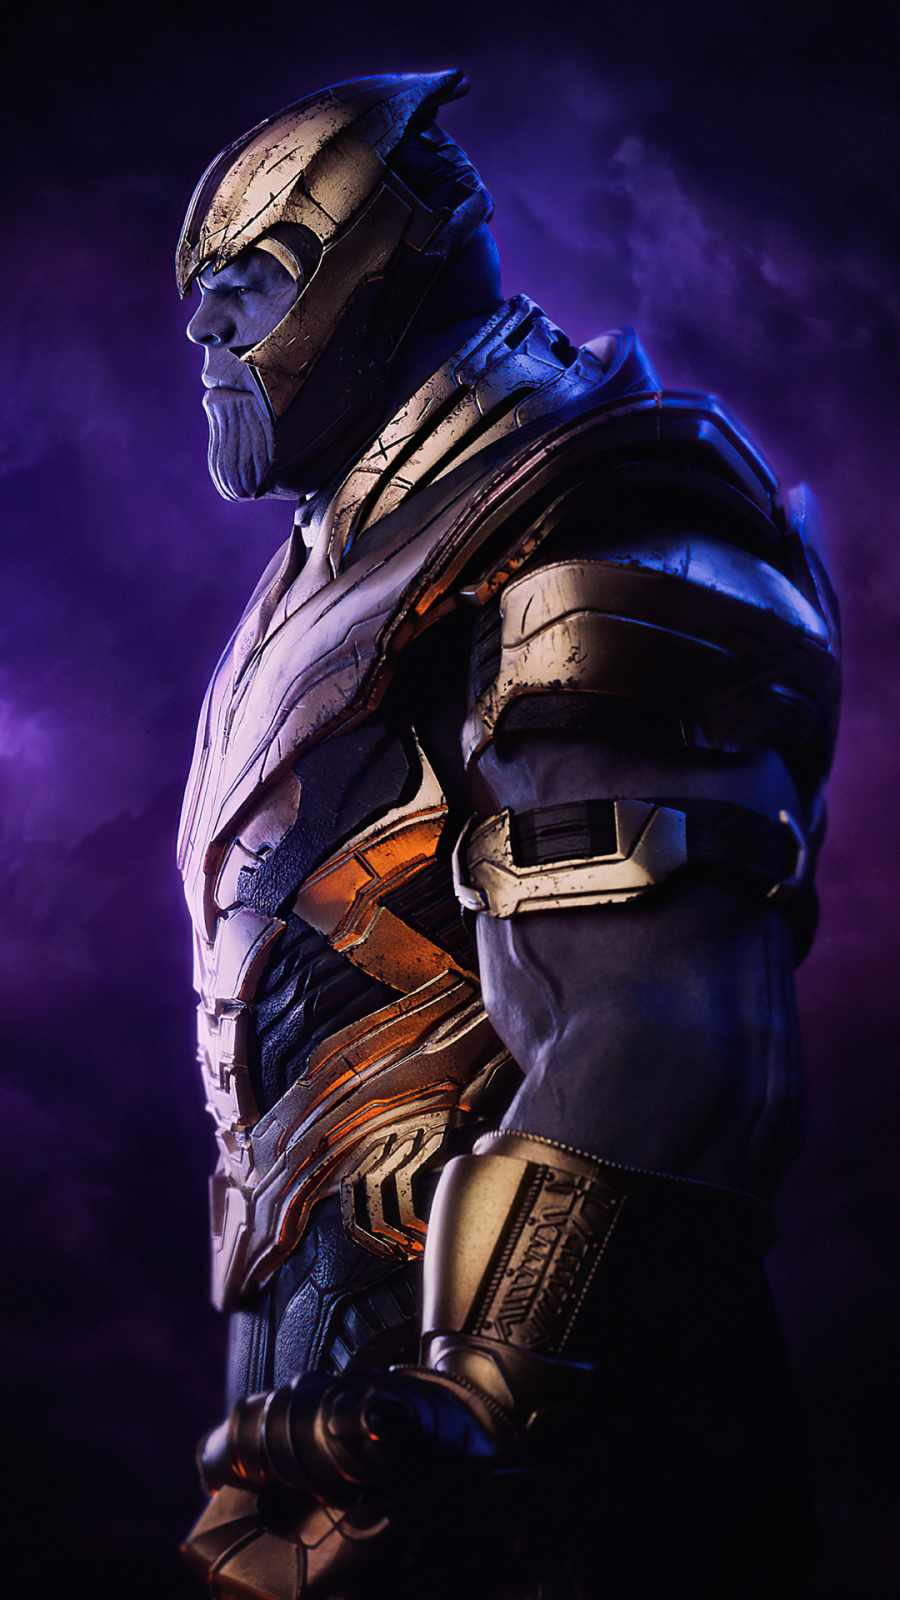 Thanos Side iPhone Wallpaper